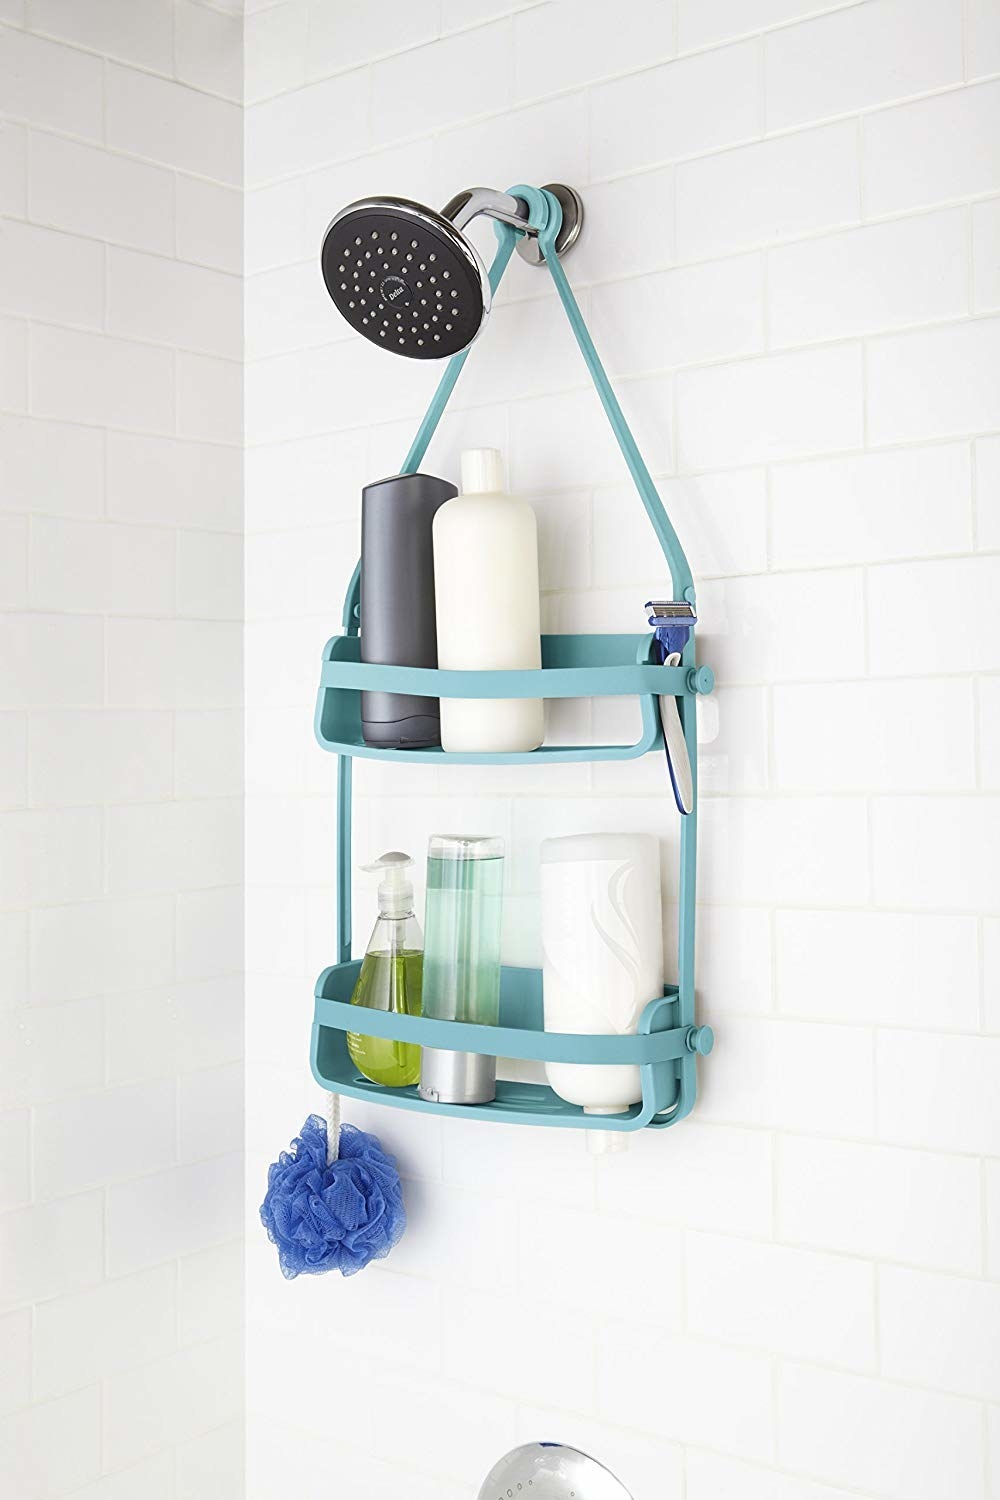 inside shower with teal flexible silicone shower caddy that hangs around the shower head